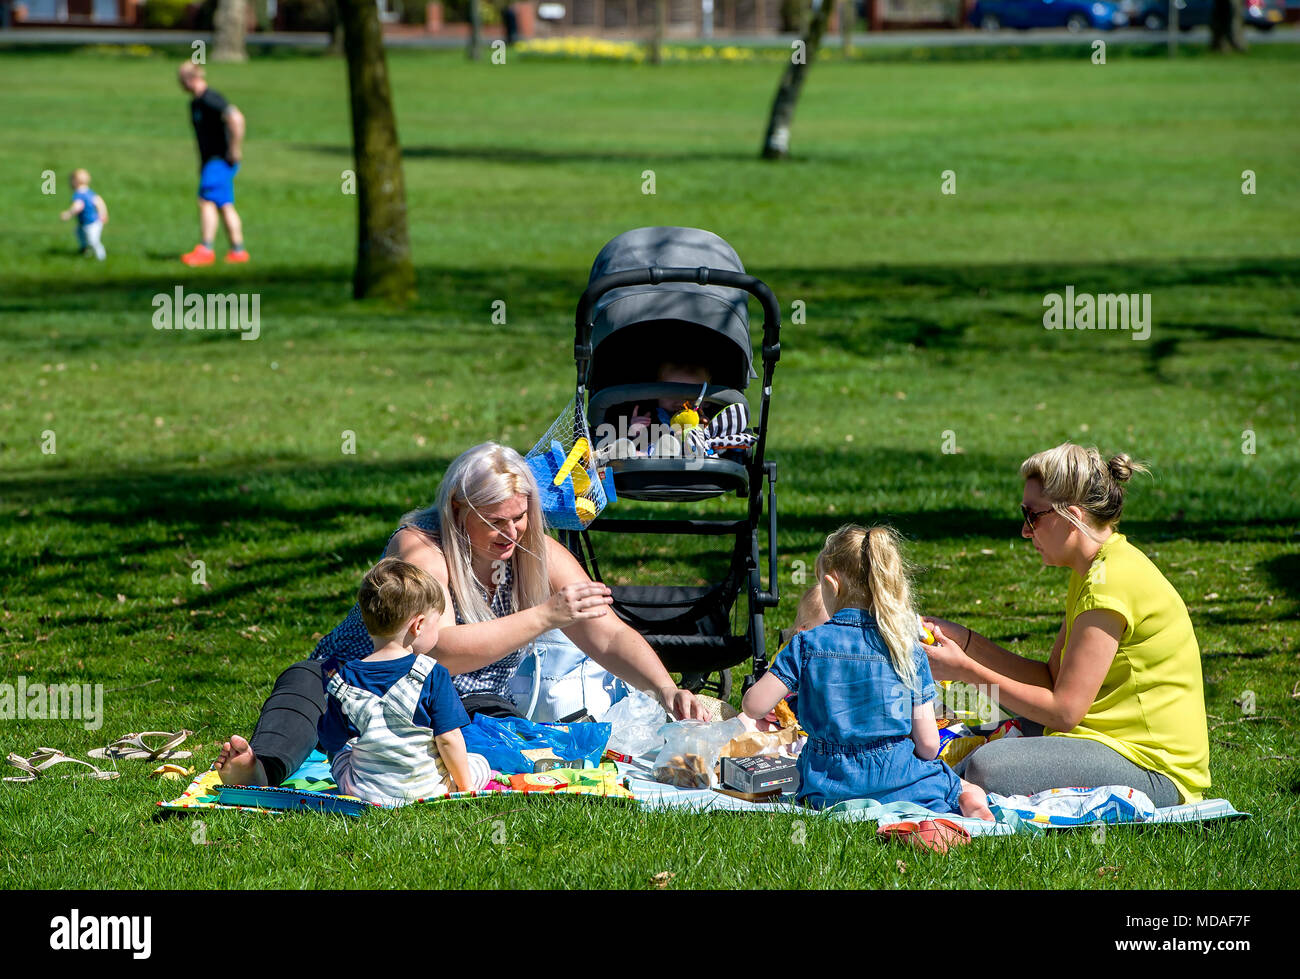 Bolton, UK. April 19, 2018. Glorious sunshine saw the crowds flock to Moss Bank Park in Bolton this afternoon on what is expected to be the hottest day of the year so far. Temperatures are set to reach the mid 20's centigrade and the hot spell is going to last until the weekend. Picnic time in the park. Picture by Paul Heyes, Thursday April 19, 2018. Credit: Paul Heyes/Alamy Live News - Stock Image